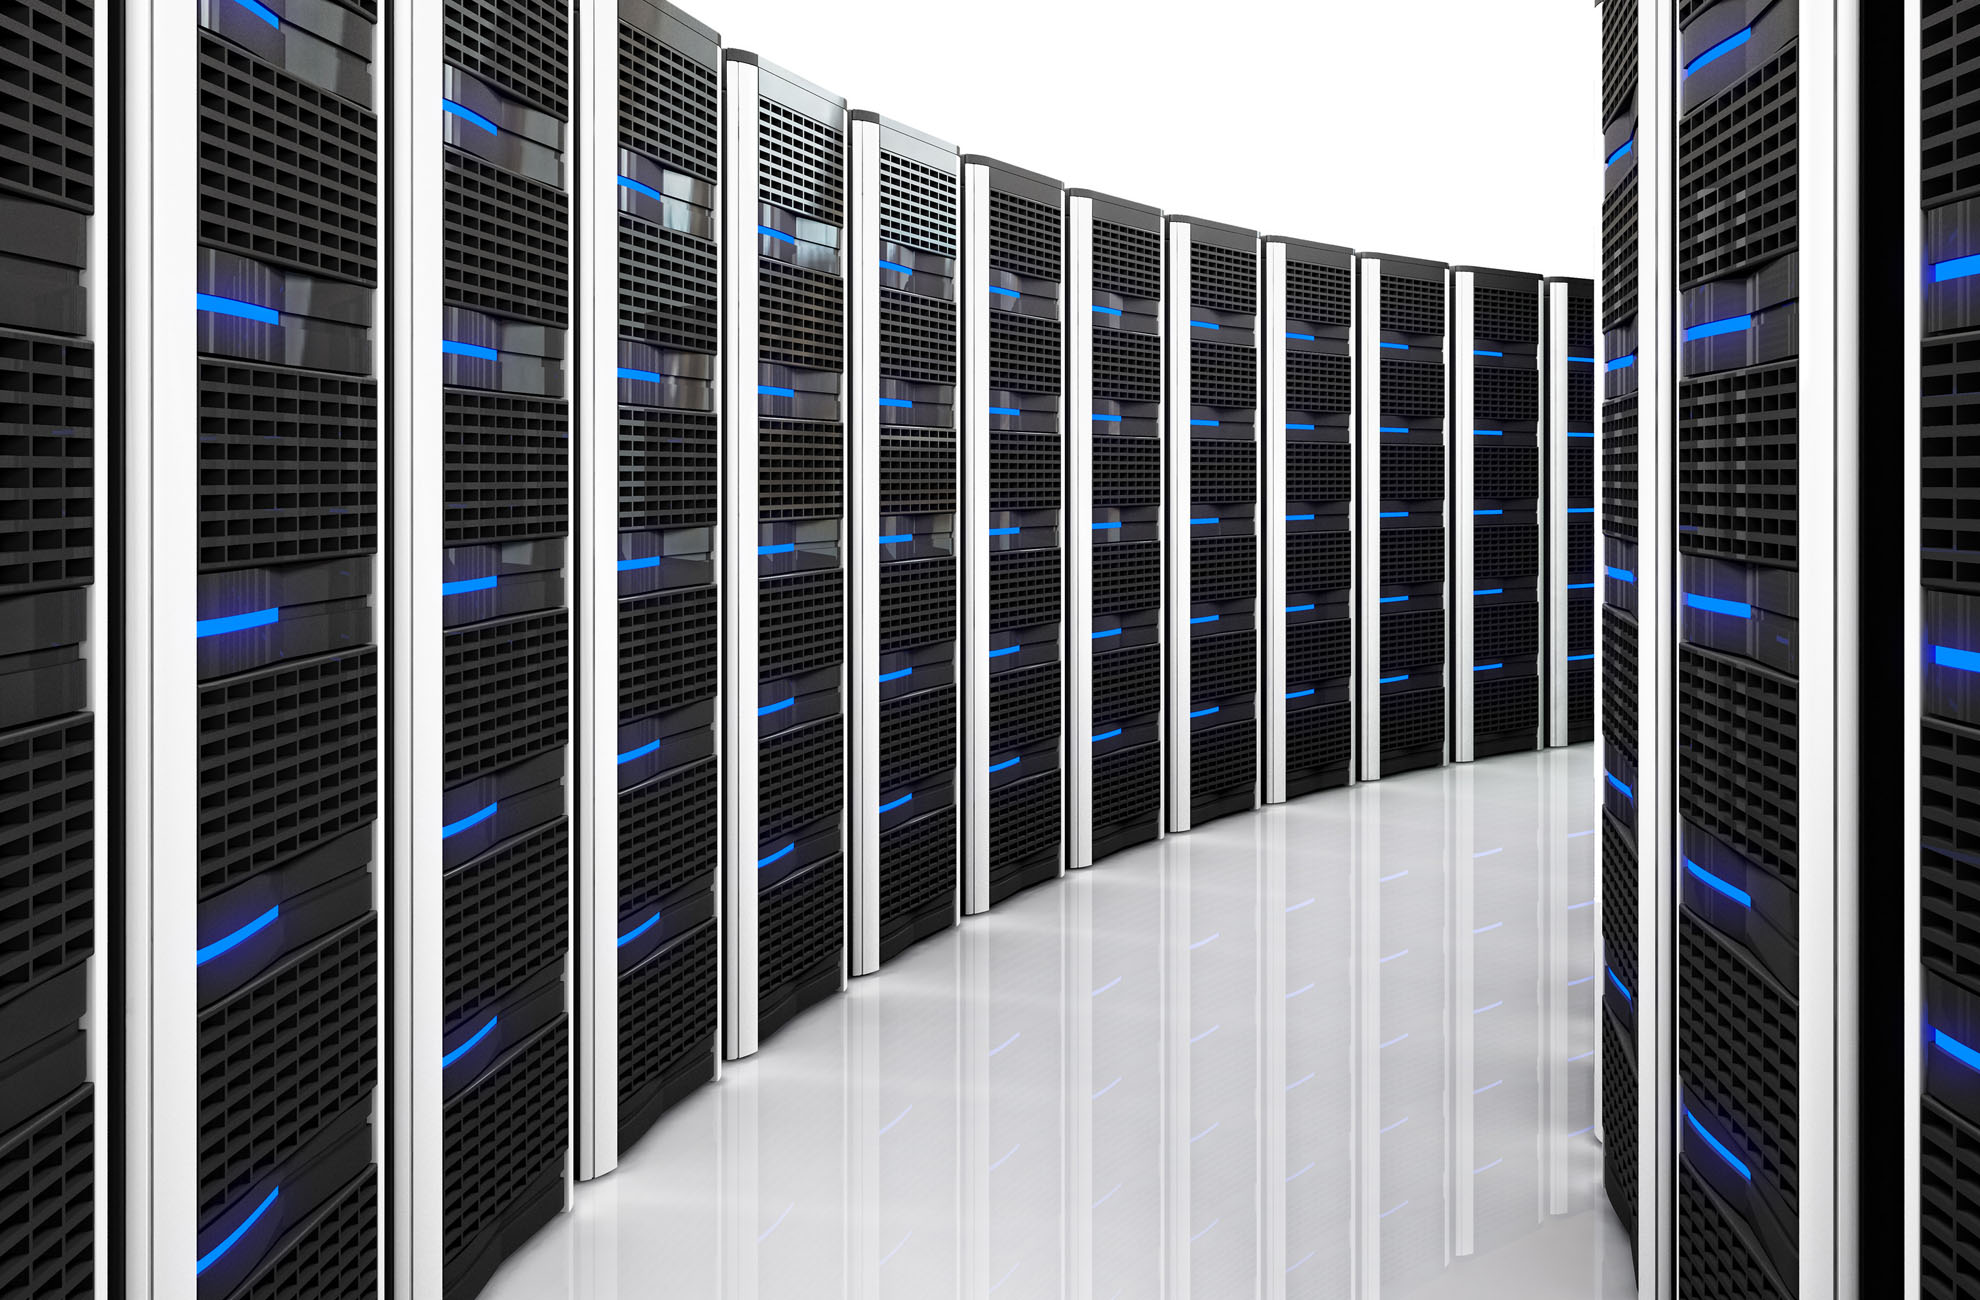 Datacenter with Servers